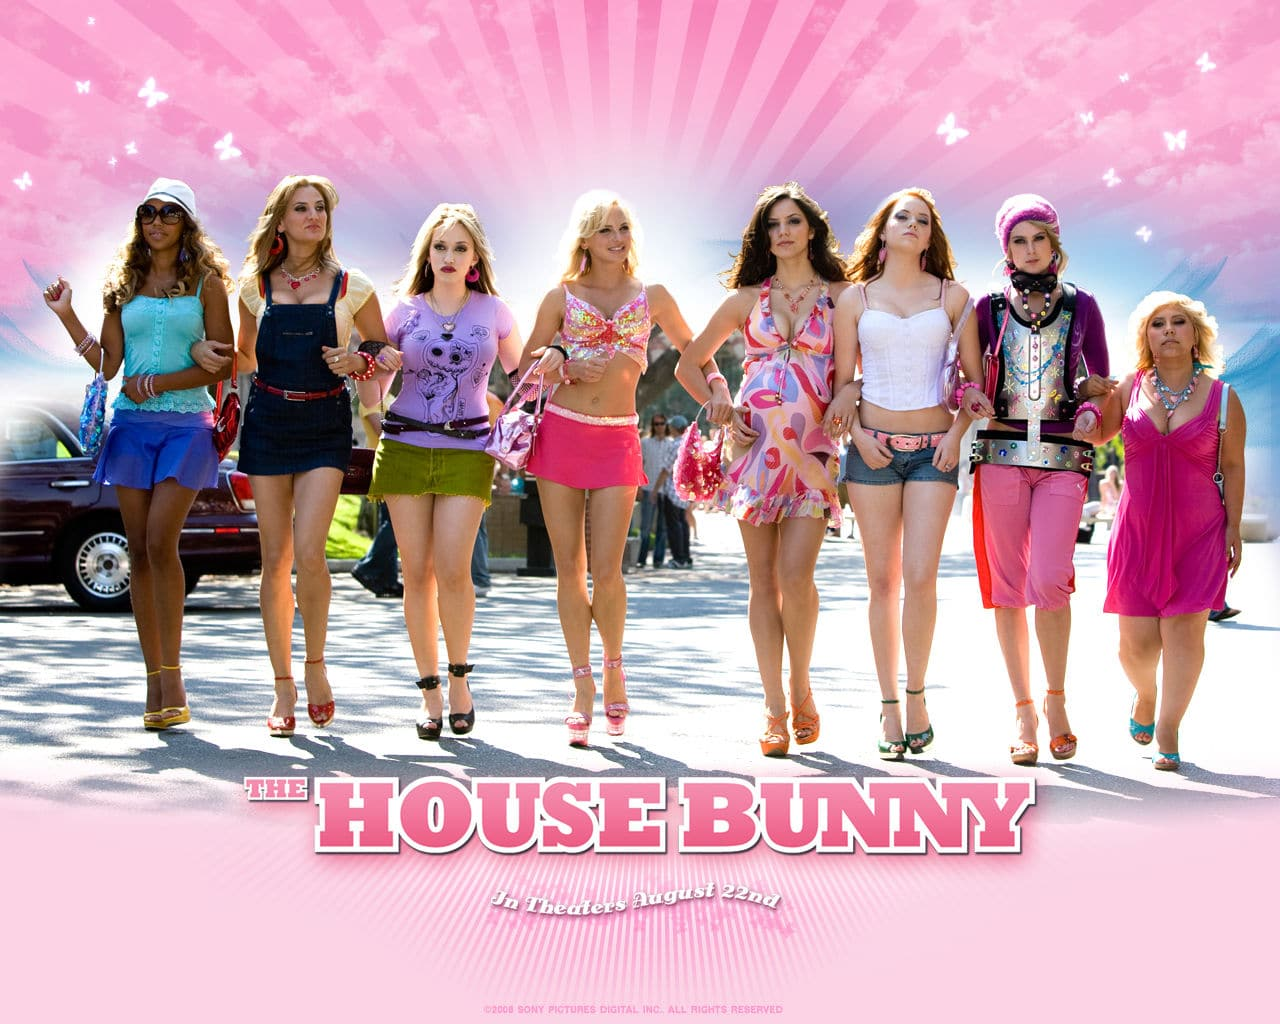 the house bunny04 Kinocast #89: House Bunny Sony Pictures Rumer Willis Katharine McPee Kat Dennings Fred Wolf Emma Stone Colin Hanks Anna Faris 2008